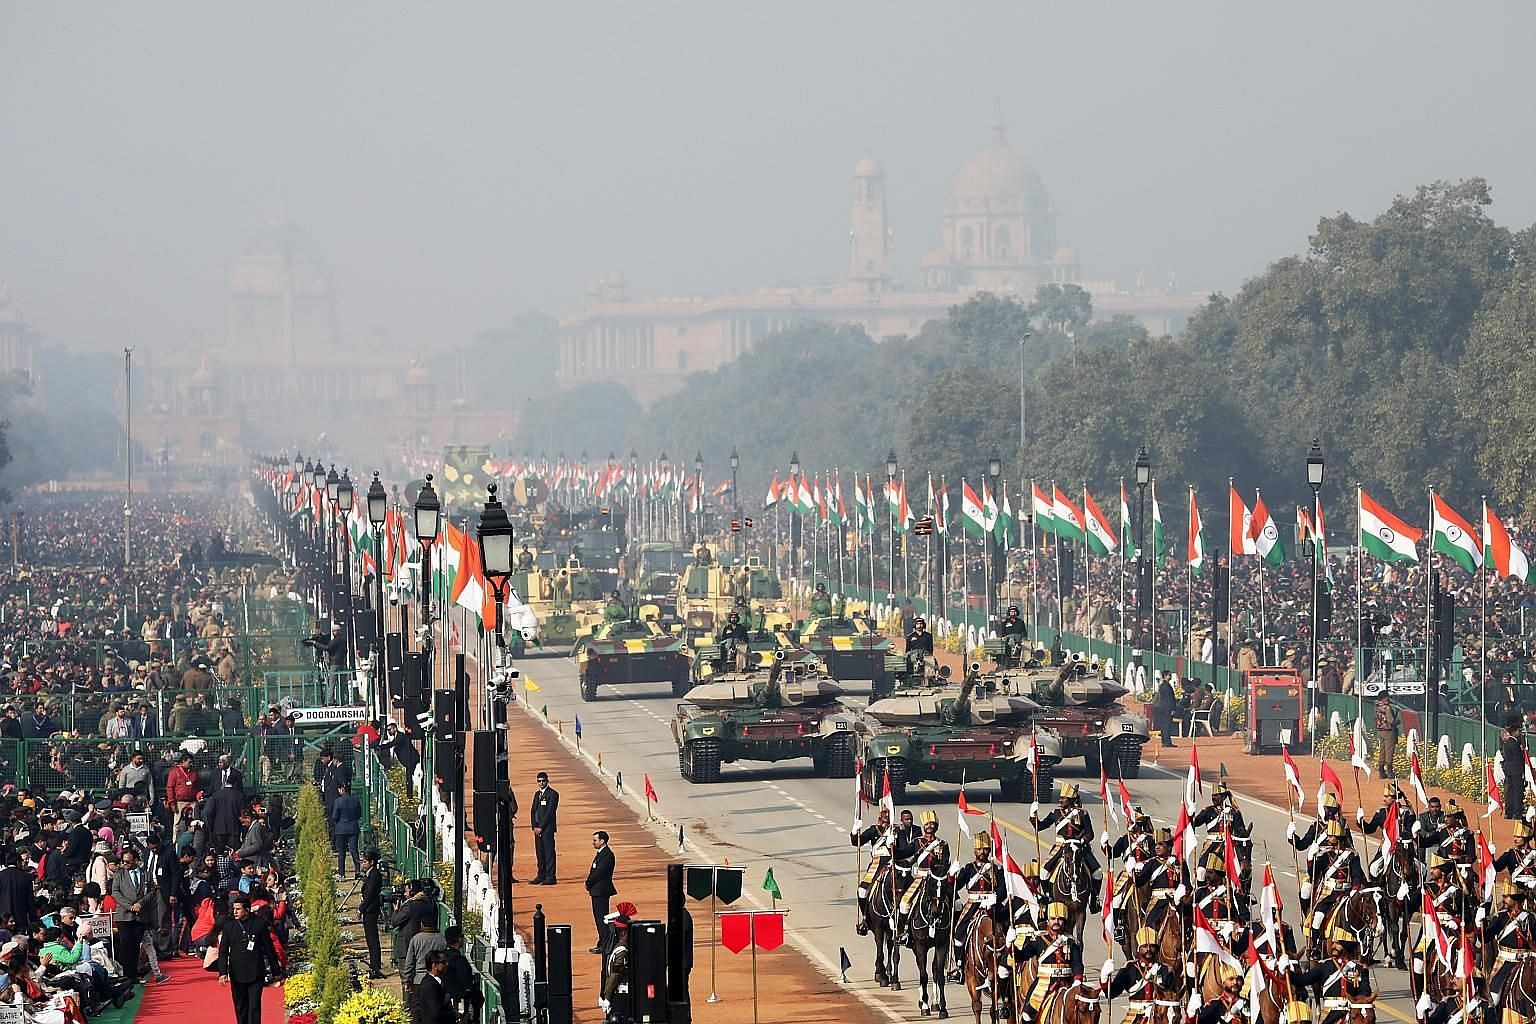 Indian Army tanks moving along the Rajpath boulevard during India's Republic Day parade in New Delhi yesterday. Brazil's President Jair Bolsonaro was the guest of honour at the event, a pomp-filled spectacle of military might featuring army tanks, ho